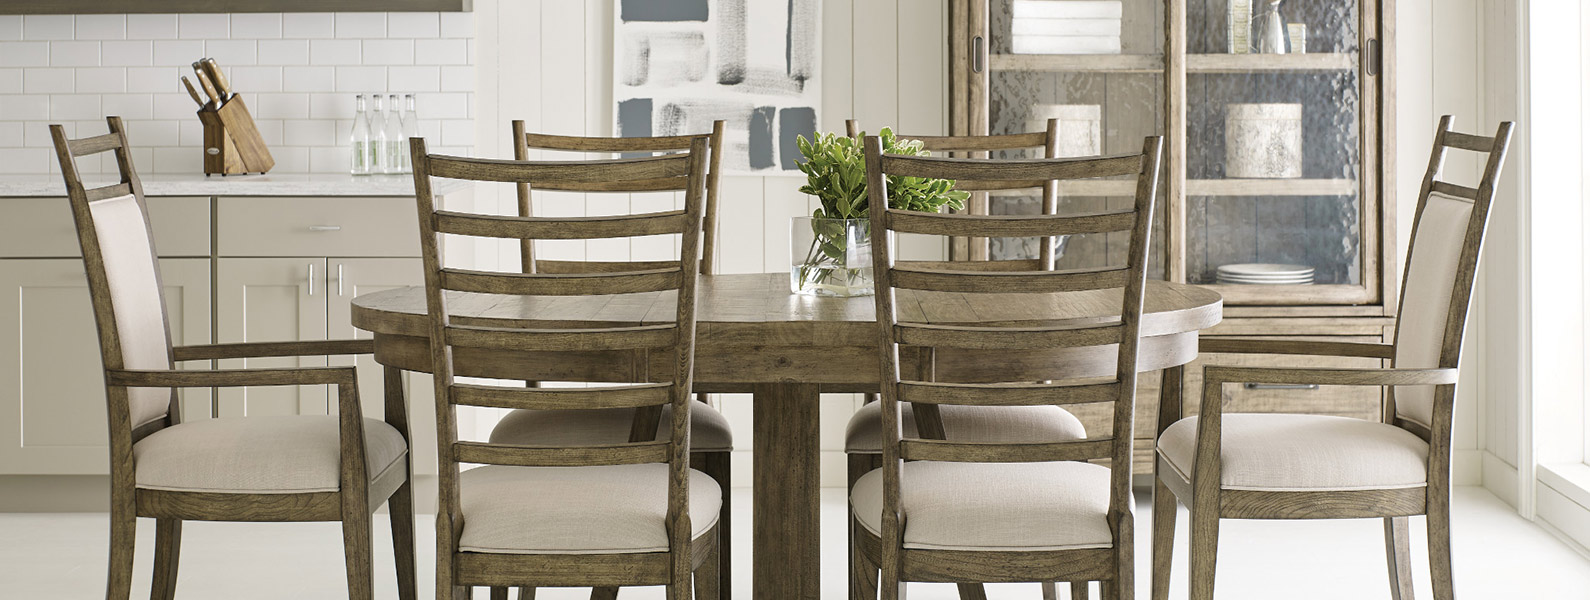 efbrannon Plank Road Dining Room by Kincaid